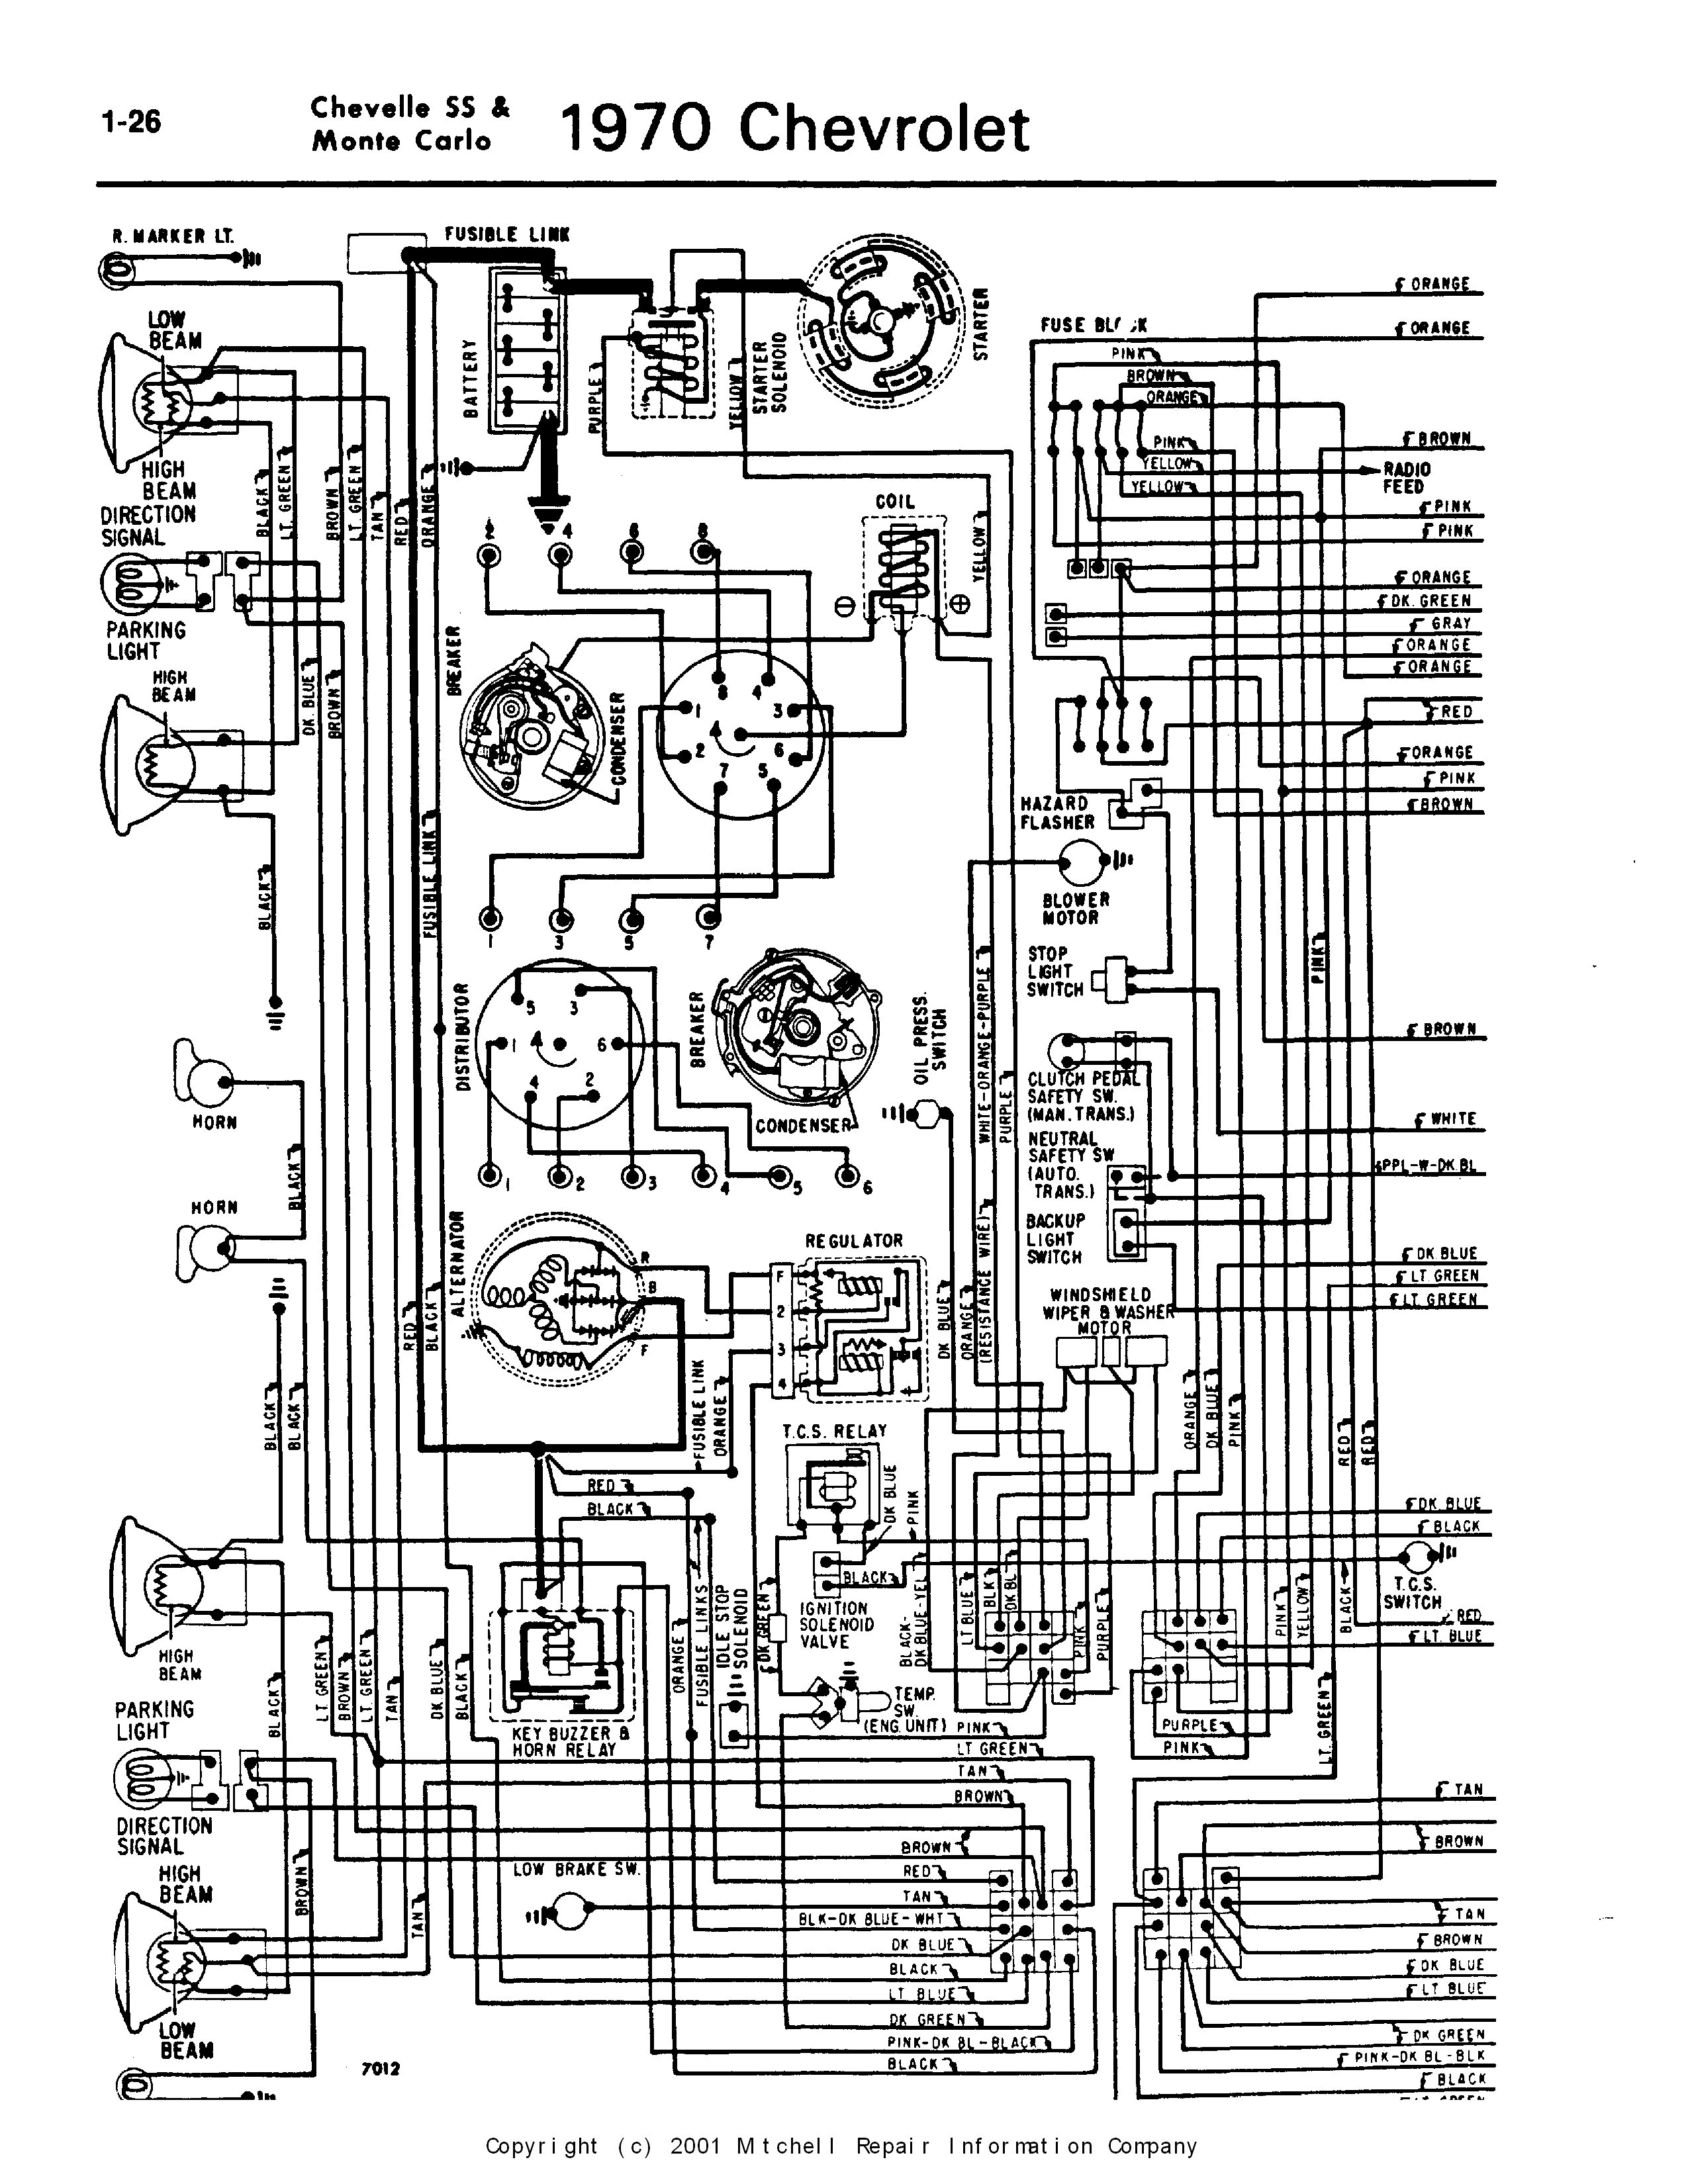 1967 charger wiring diagram free download schematic wiring 1968 plymouth road runner gtx belvedere